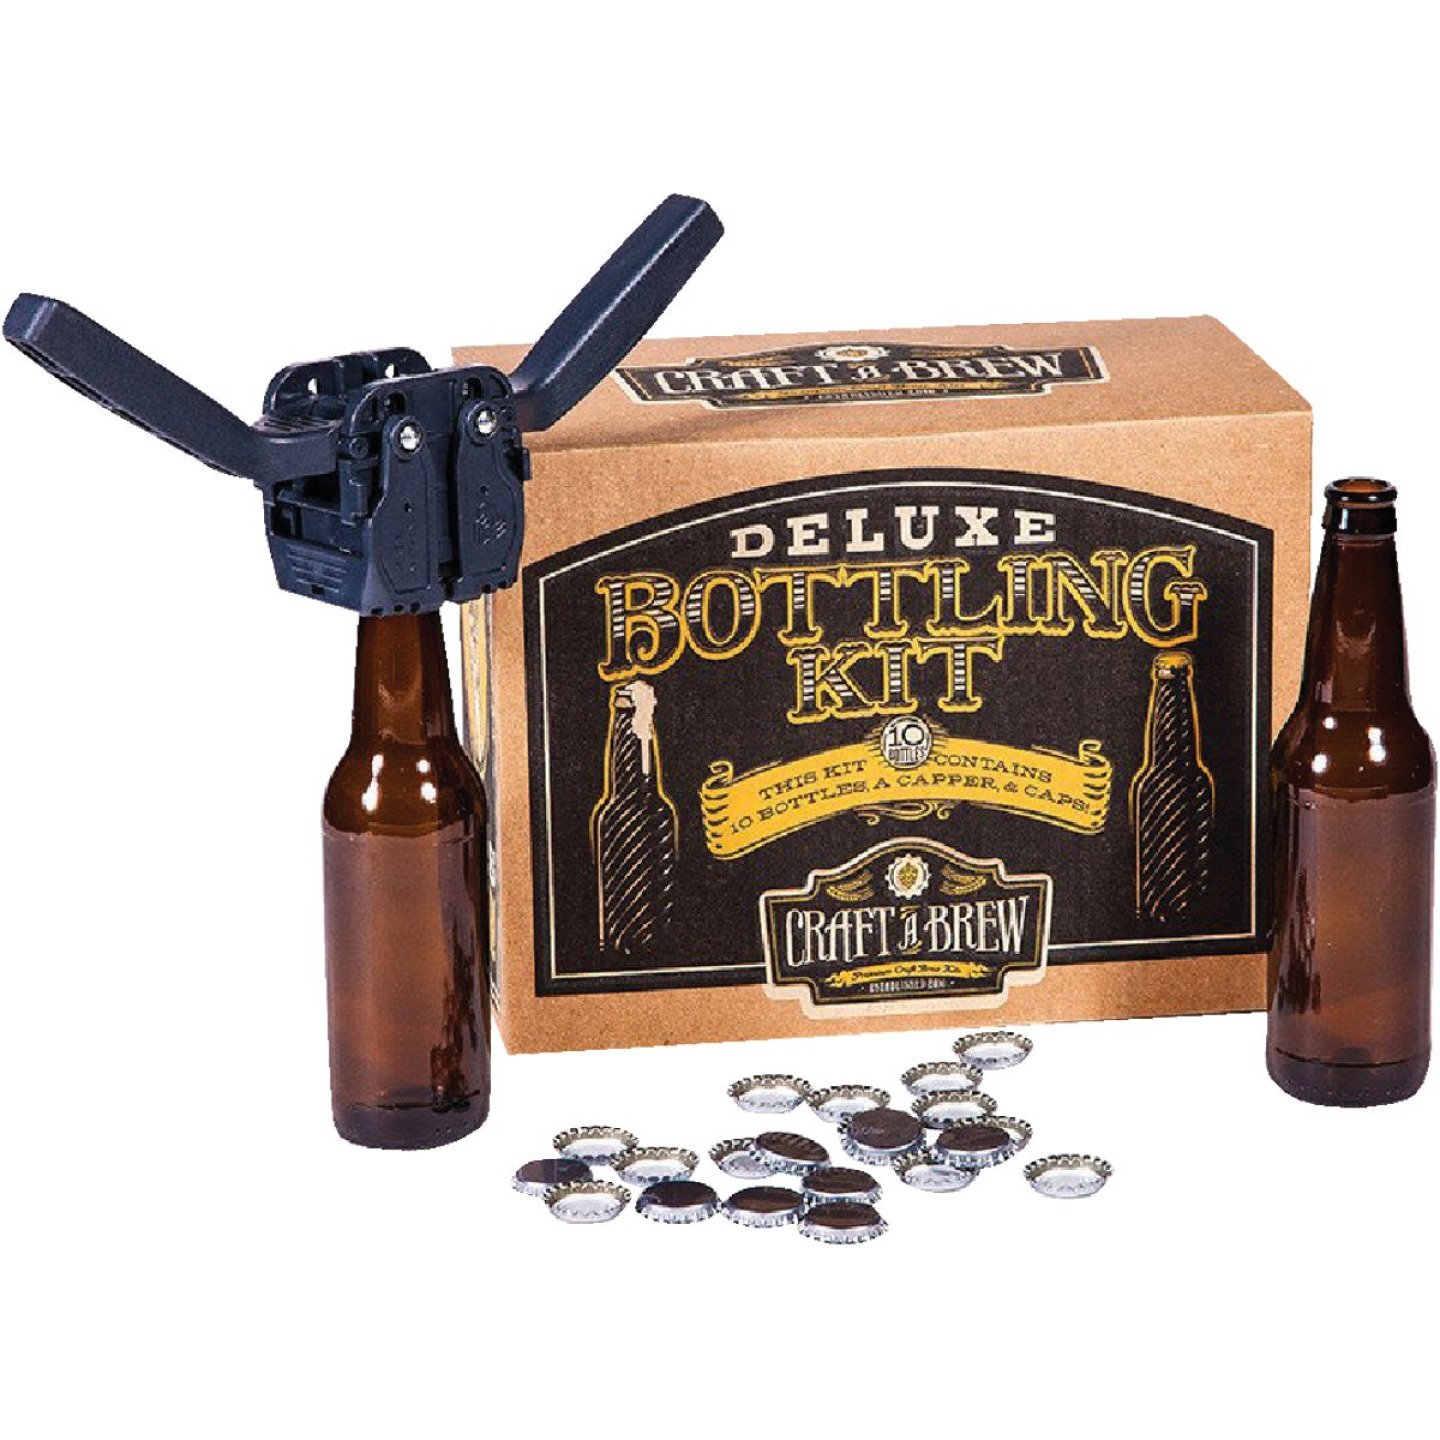 Craft A Brew Deluxe Beer Bottling Kit (10-Piece) Image 1